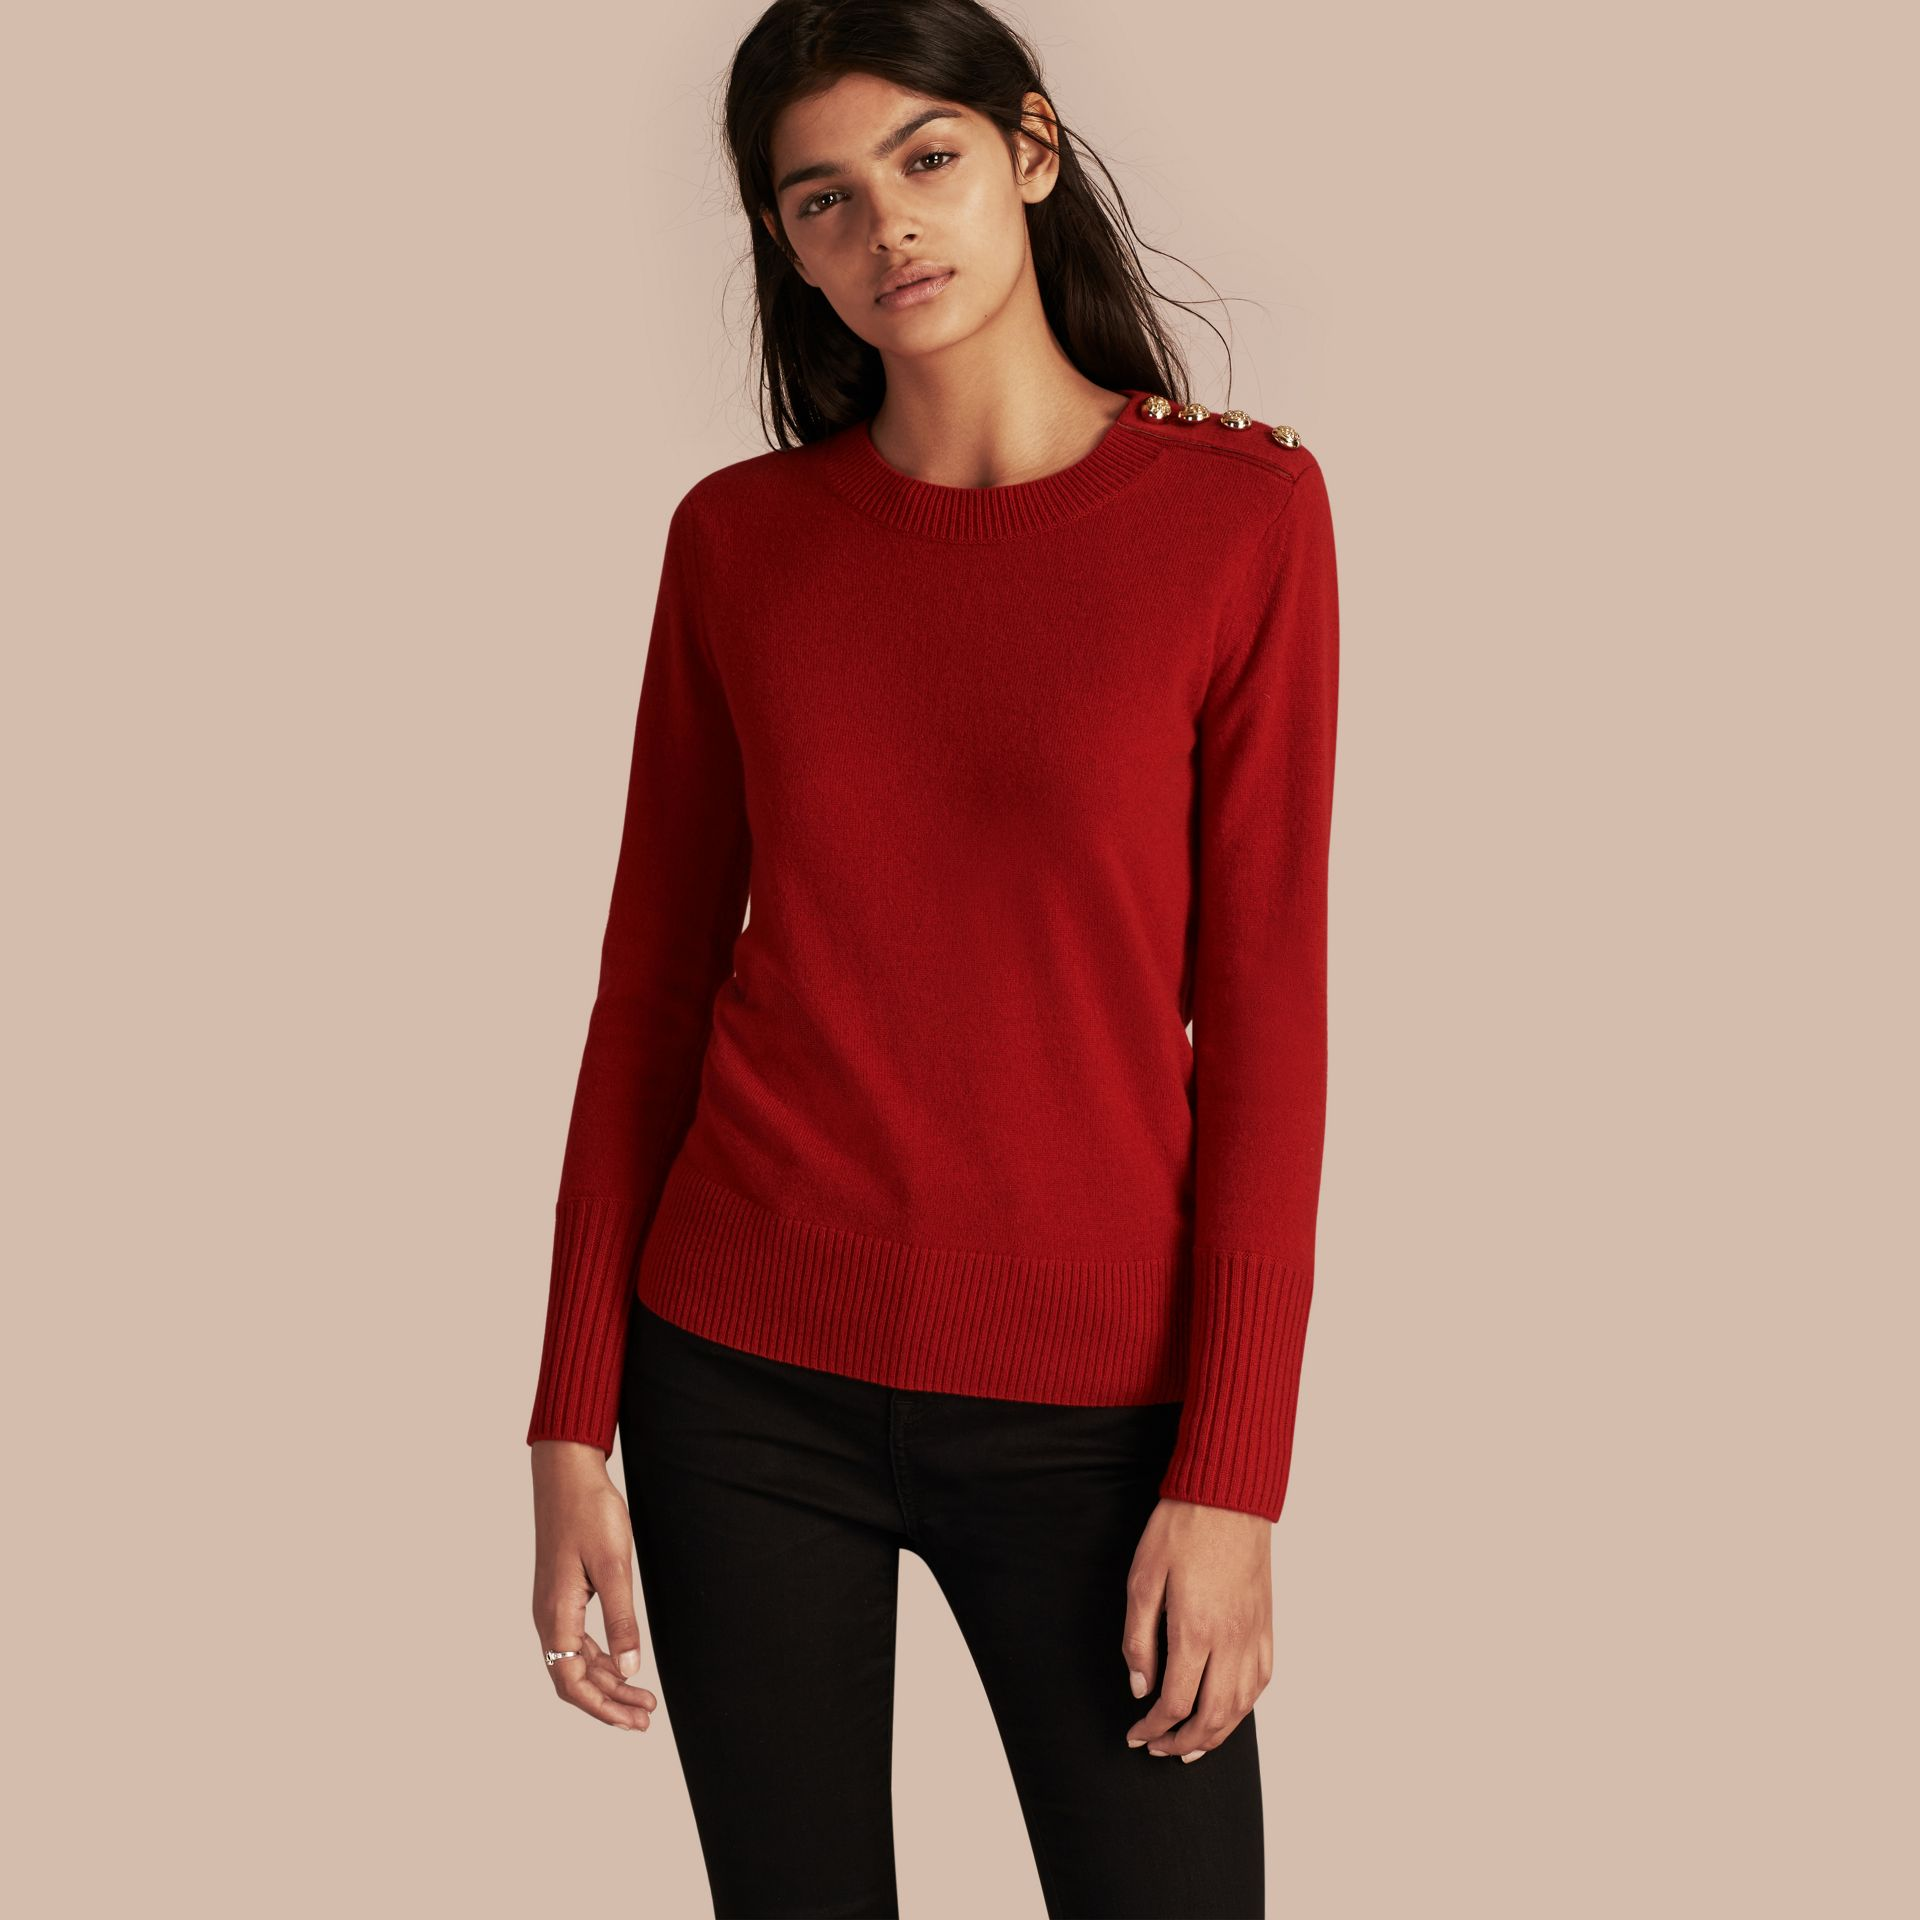 Parade red Cashmere Sweater with Crested Buttons Parade Red - gallery image 1